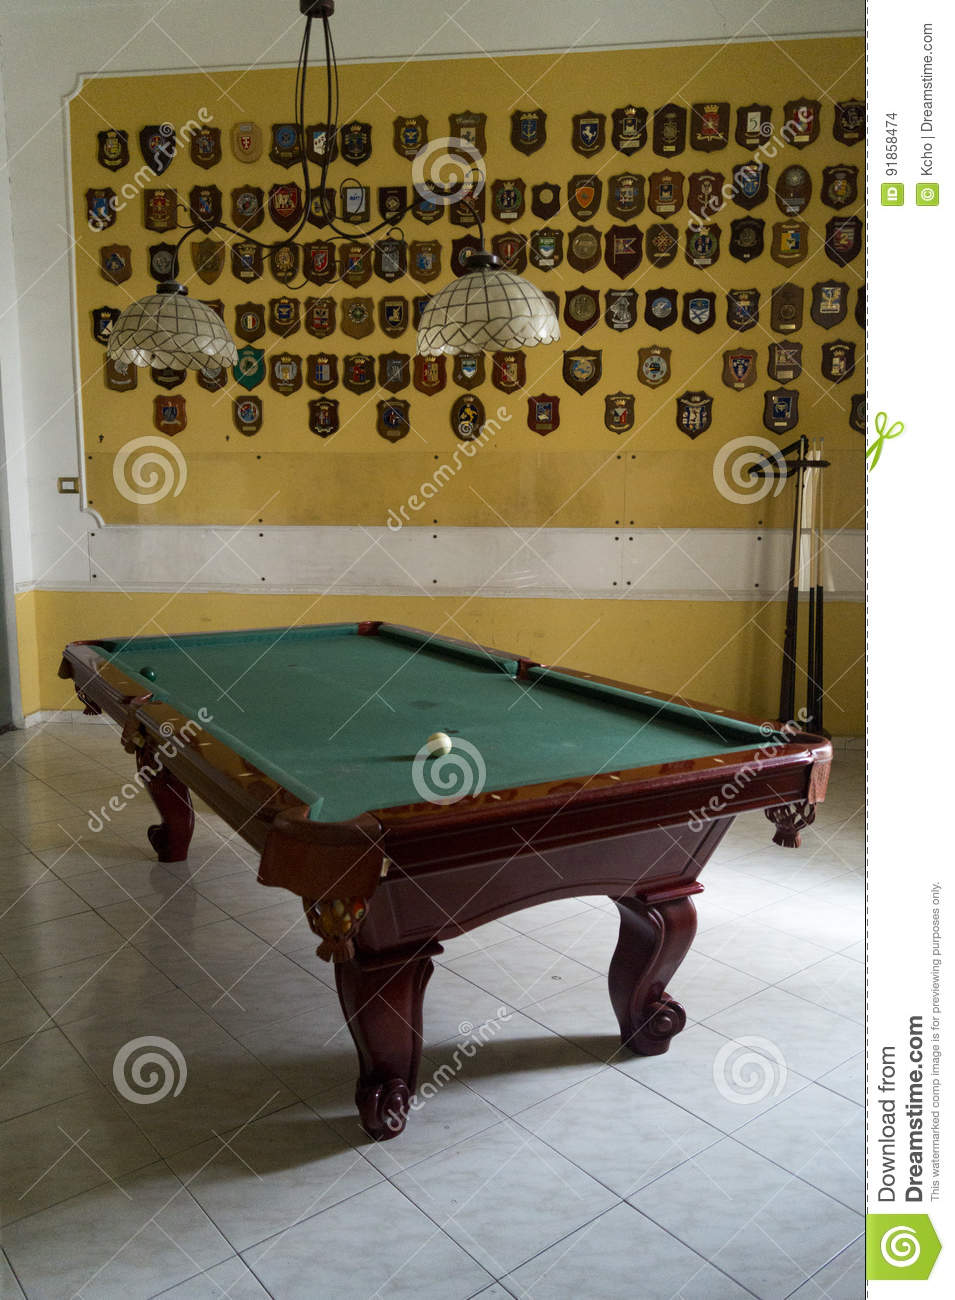 Room with billiards